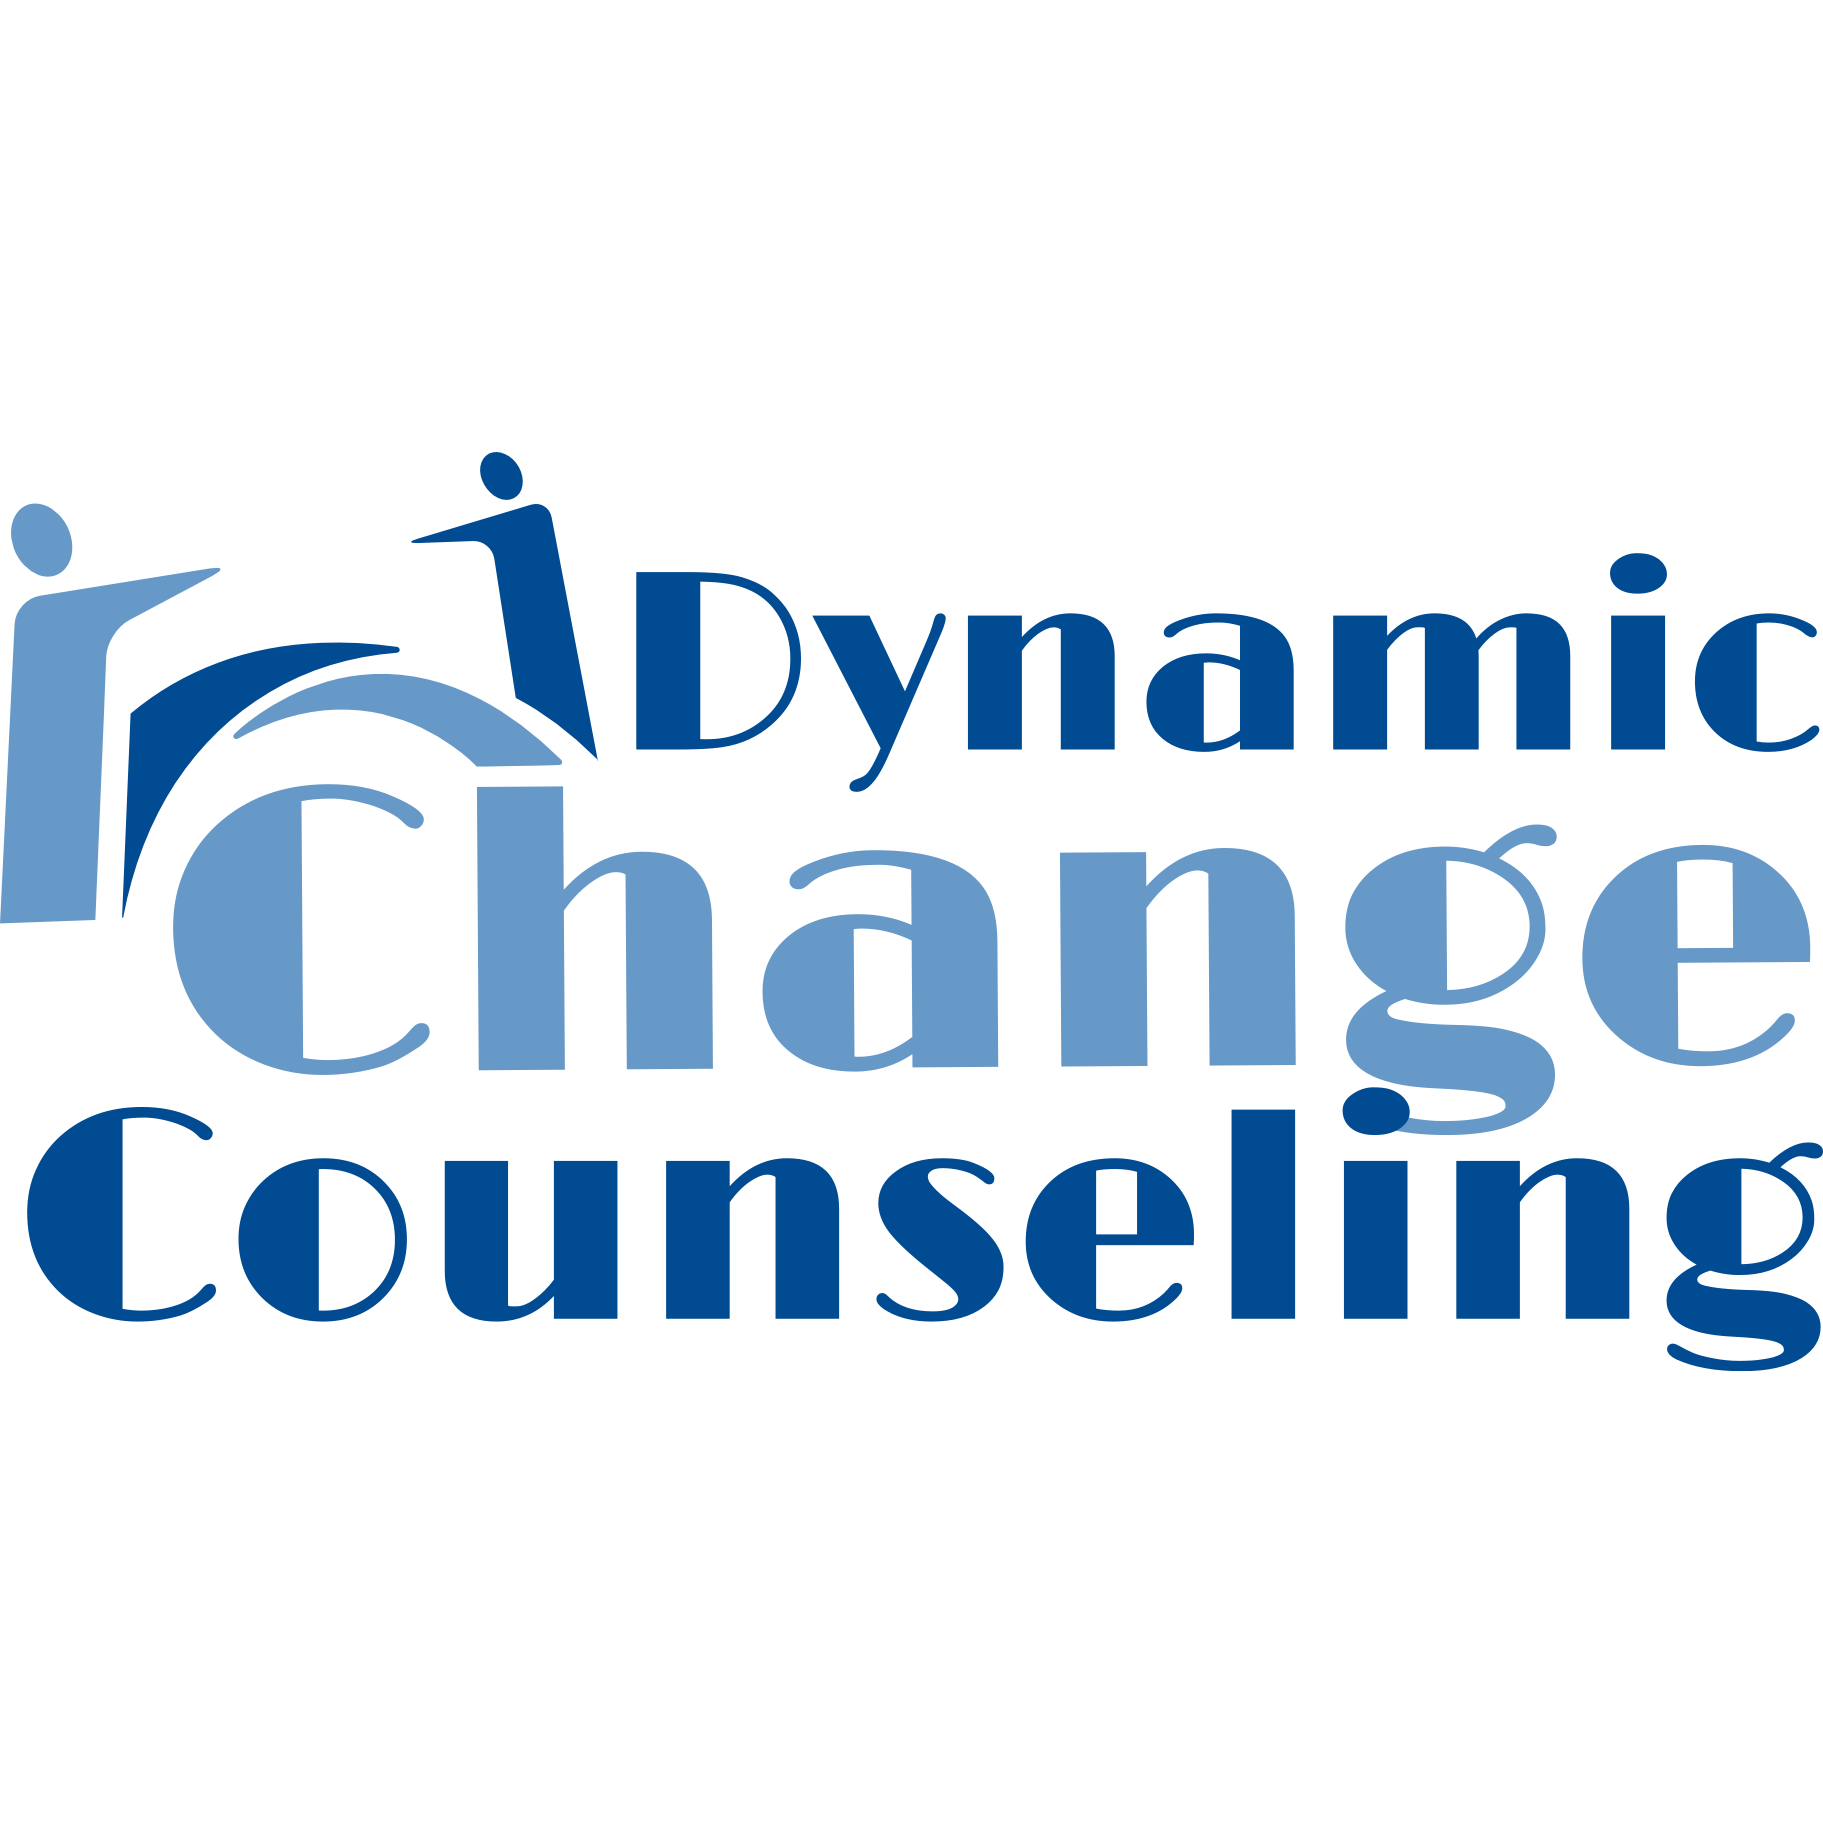 Dynamic Change Counseling